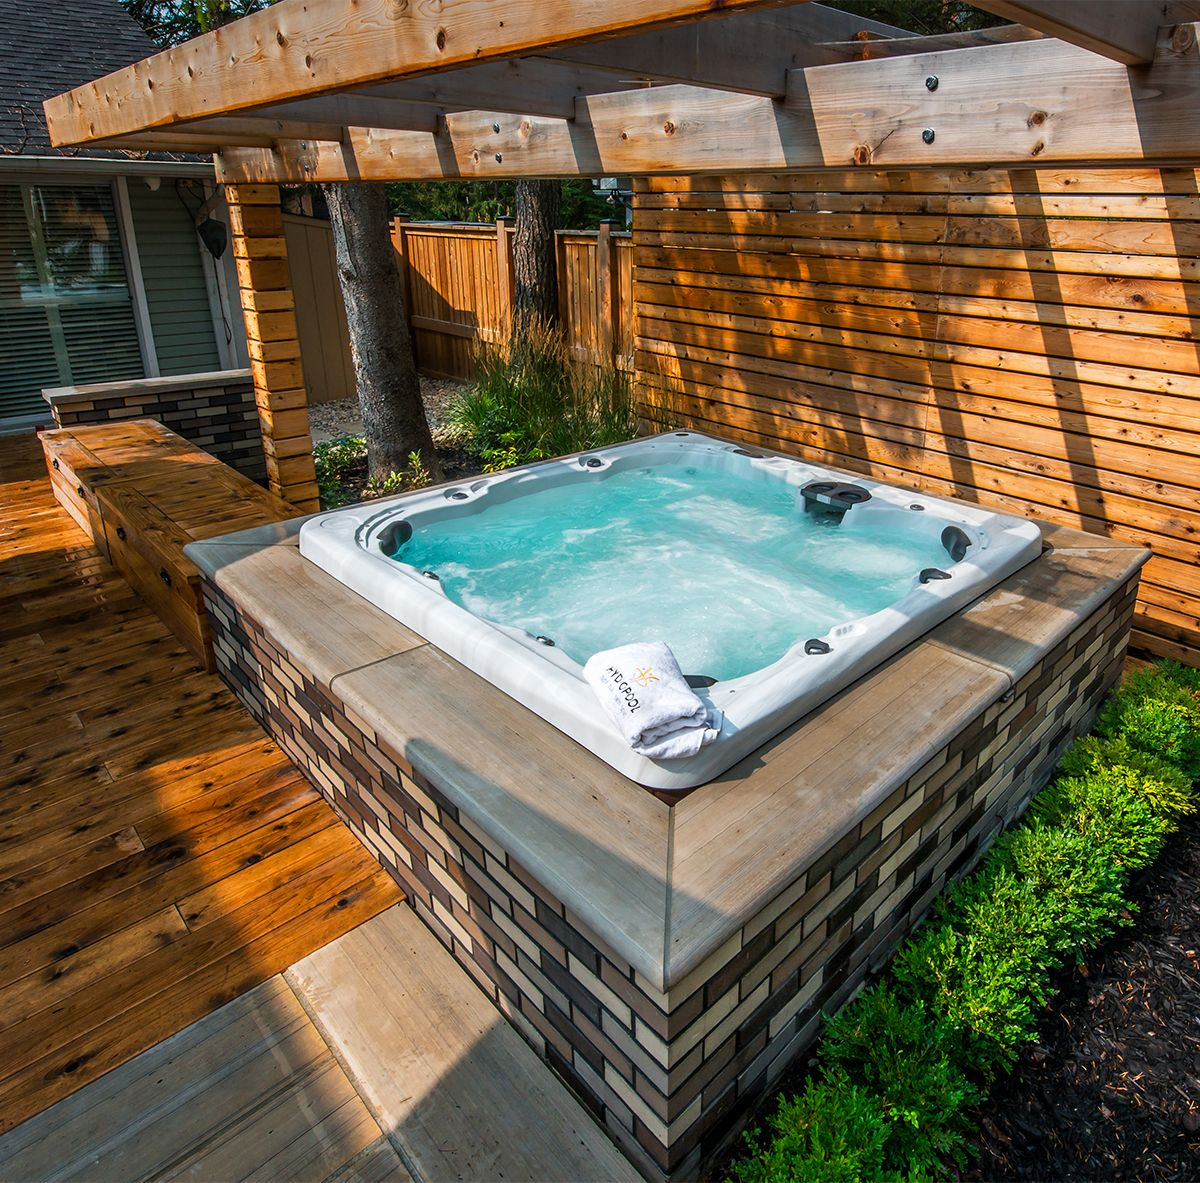 Jacuzzi Pool Installation Hot Tubs Hot Tub Install Ideas Pool Supplies Cleaning Hot Tub